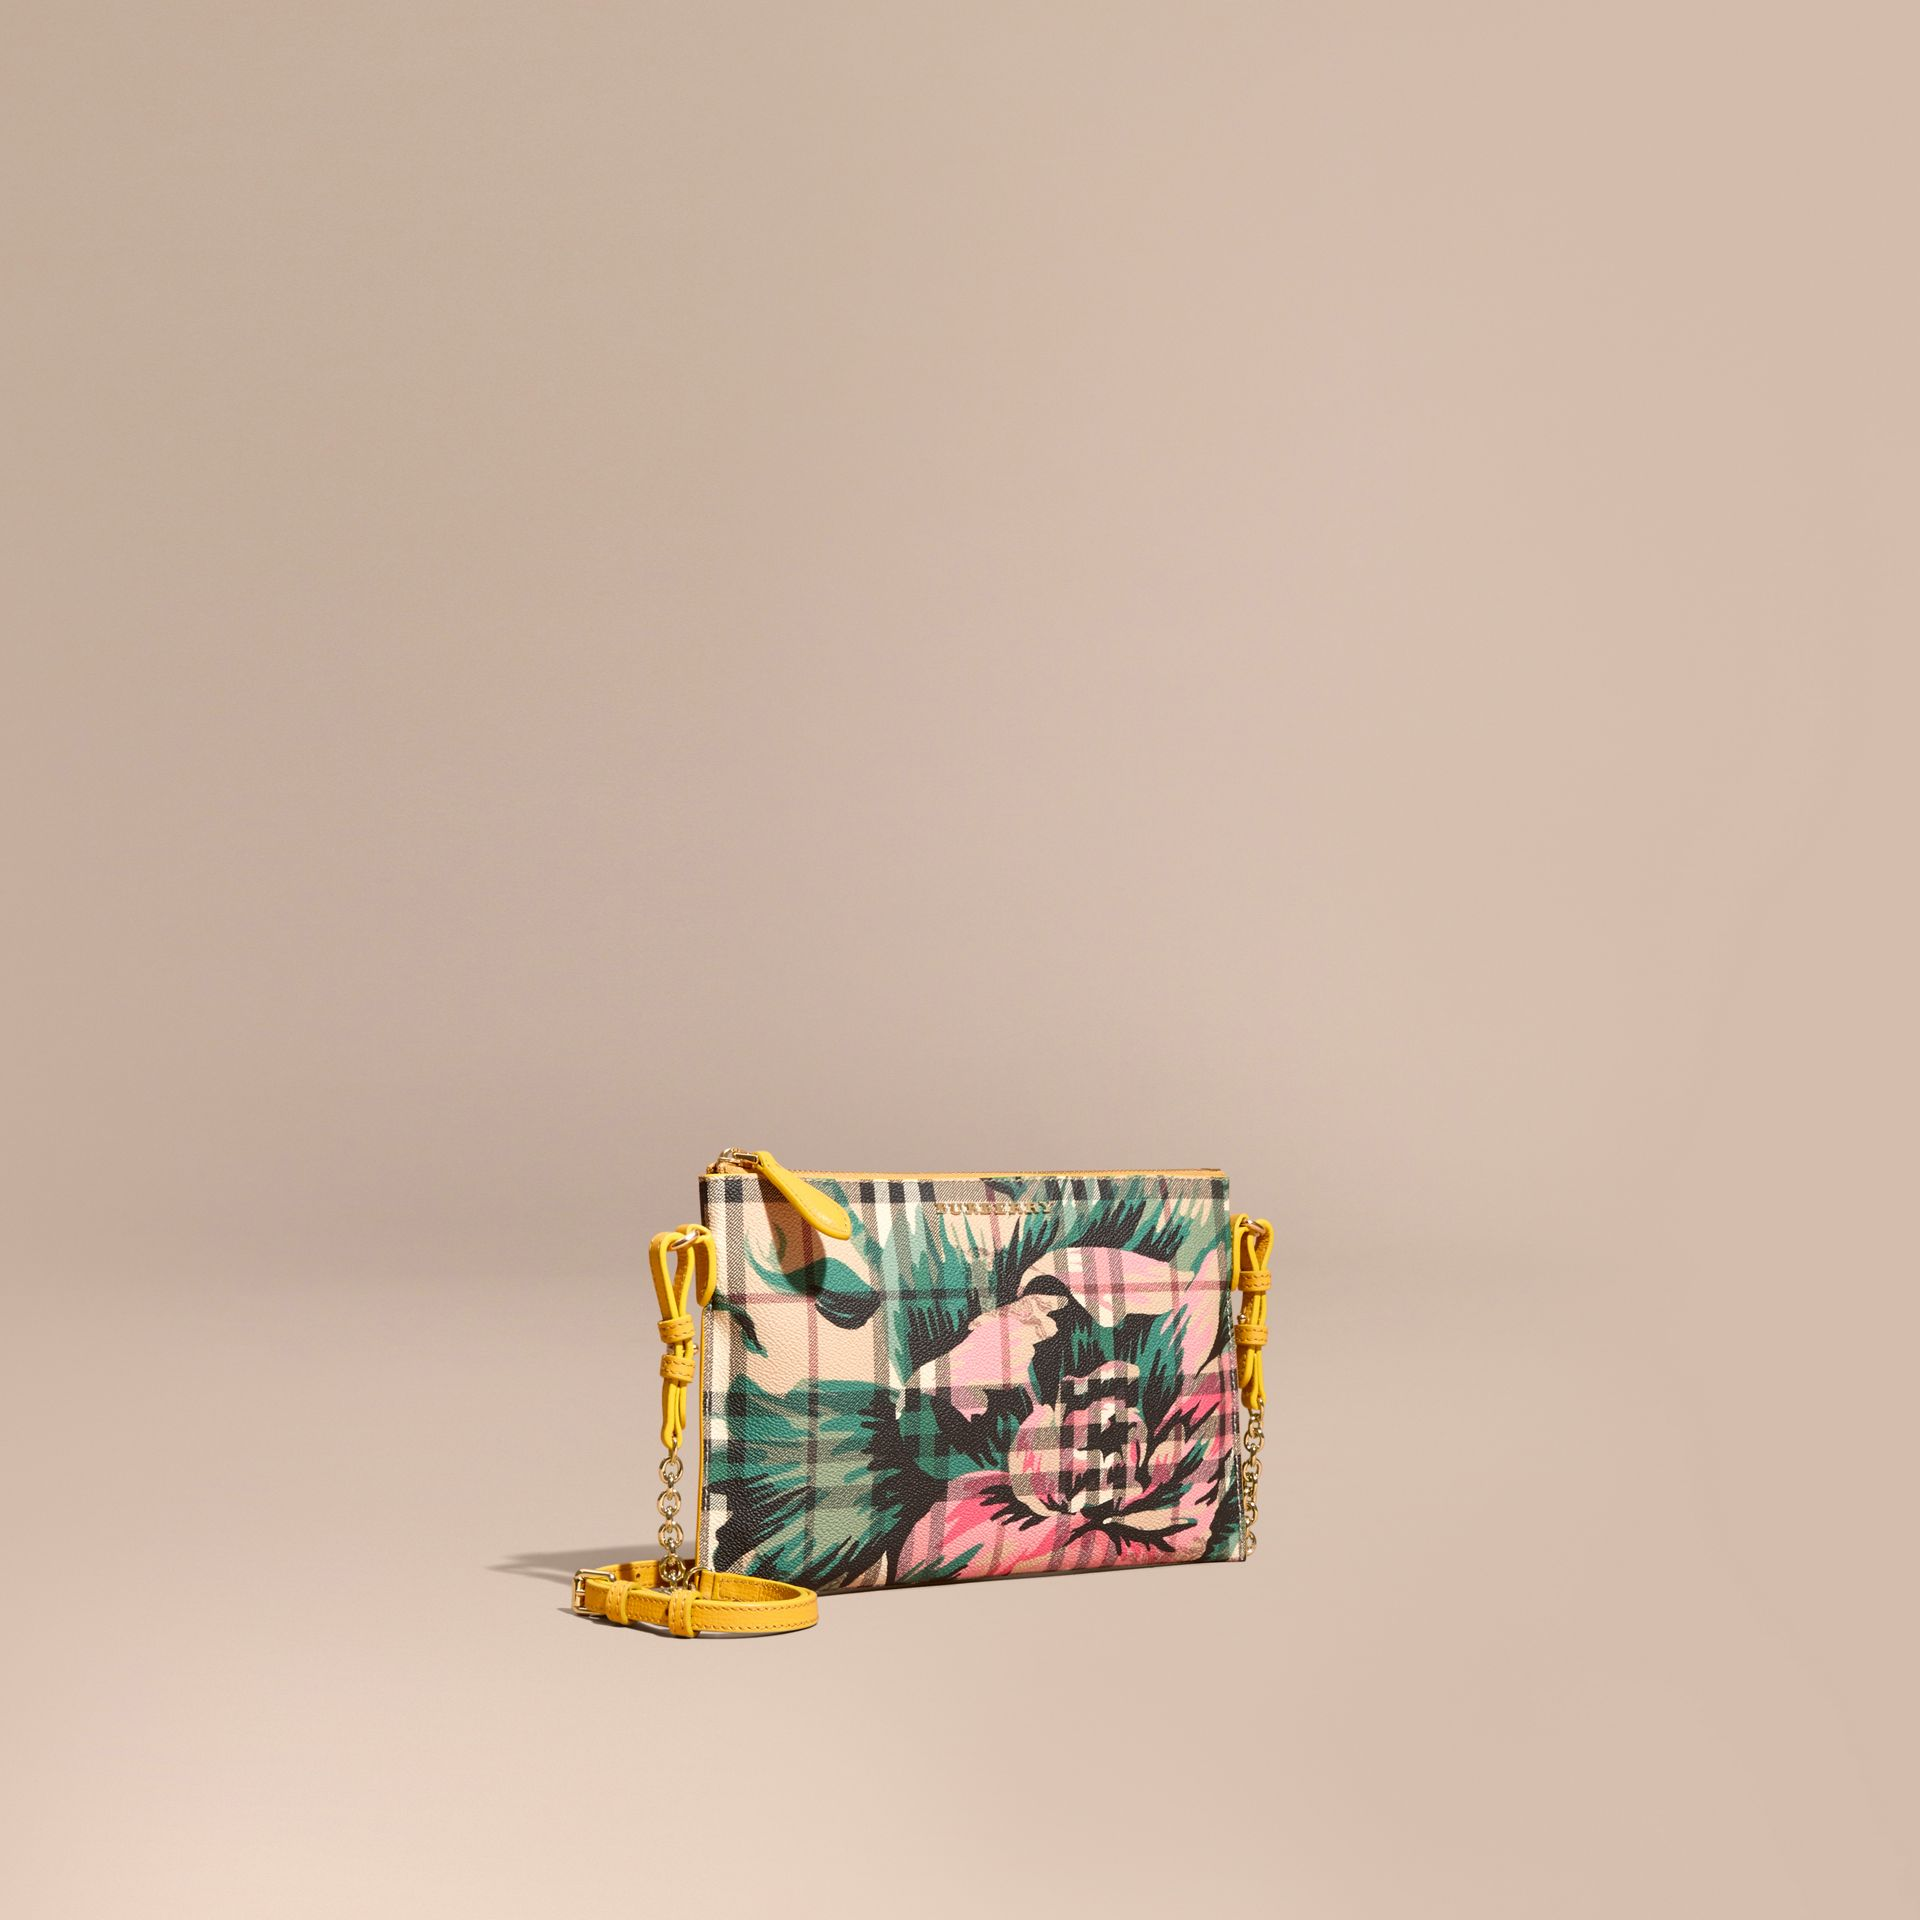 Peony Rose Print Haymarket Check and Leather Clutch Bag in Larch Yellow/emerald Green - gallery image 1